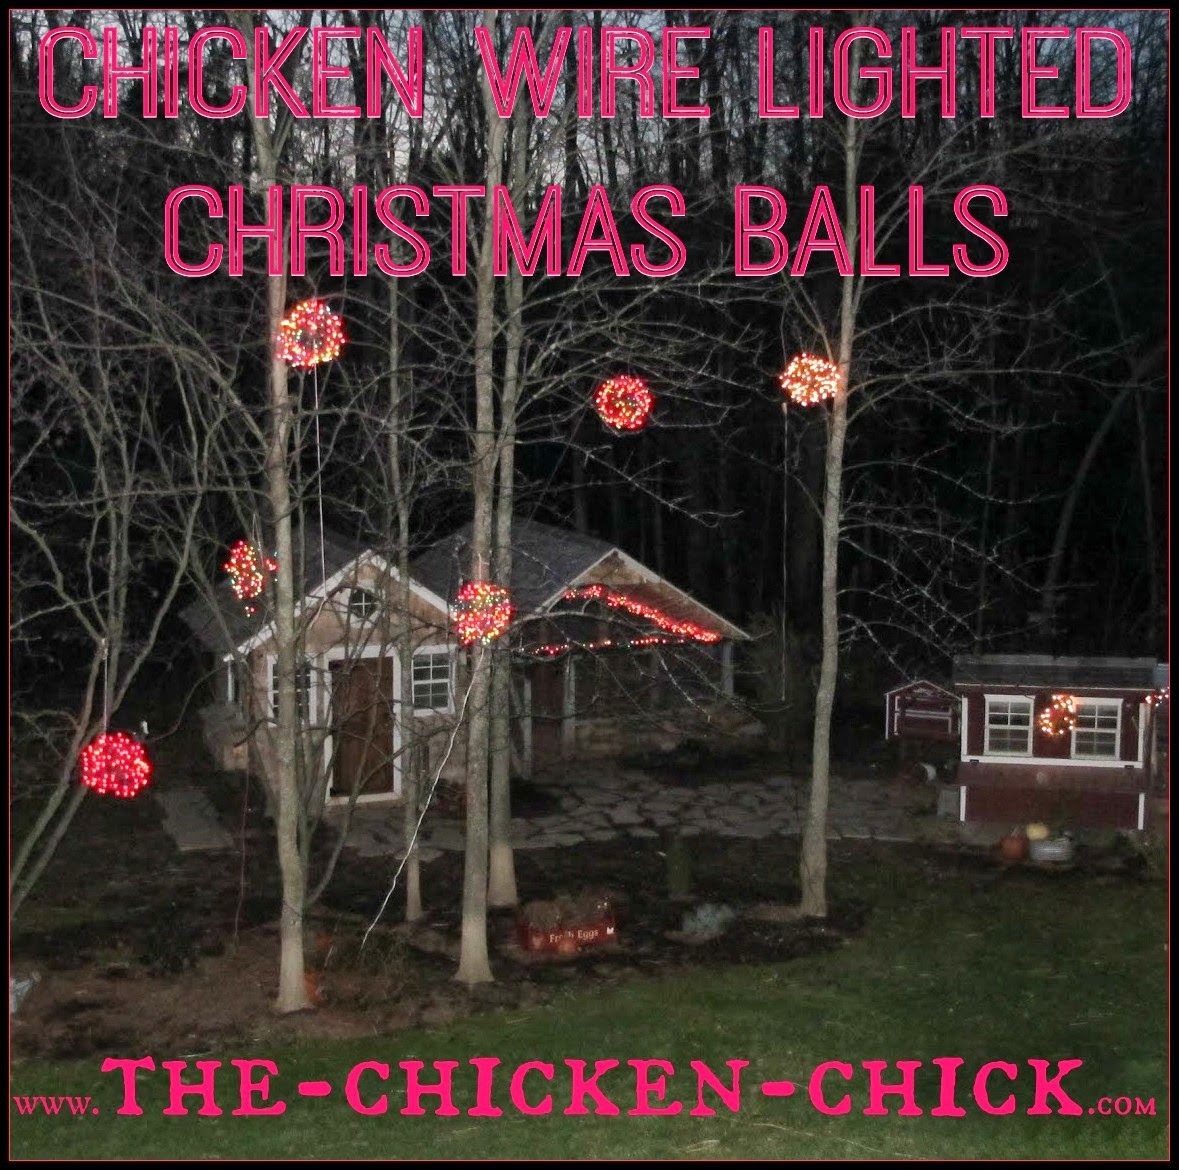 Lighted Christmas Balls made with chicken wire are a unique and festive decoration in any yard or chicken run.For little more than a 20 minute time investment and approximately $3.00 per ball, a stunning, outdoor display can be created that will be the envy of the neighborhood!